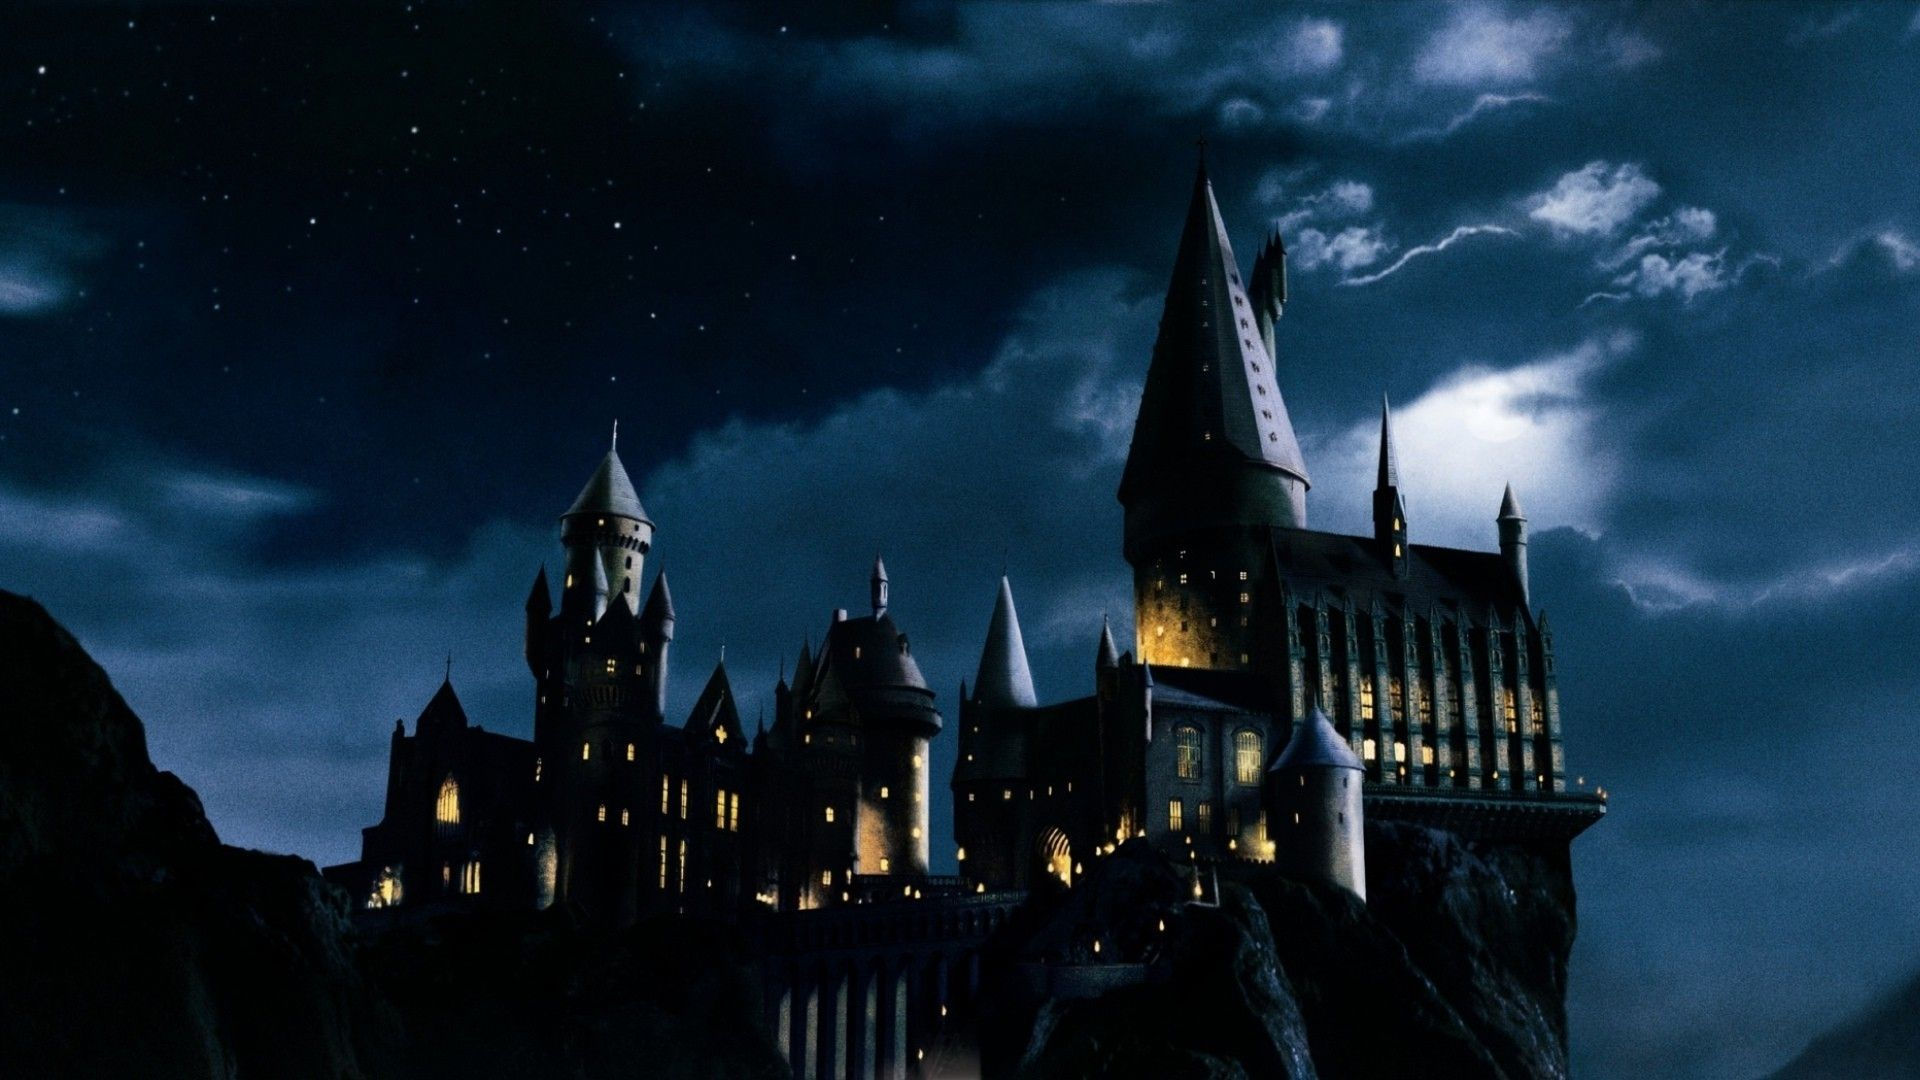 10 Best Hogwarts Hd Wallpapers 1080p Full Hd 1080p For Pc Desktop Hogwarts Professors Harry Potter Wallpaper Harry Potter Fan Theories